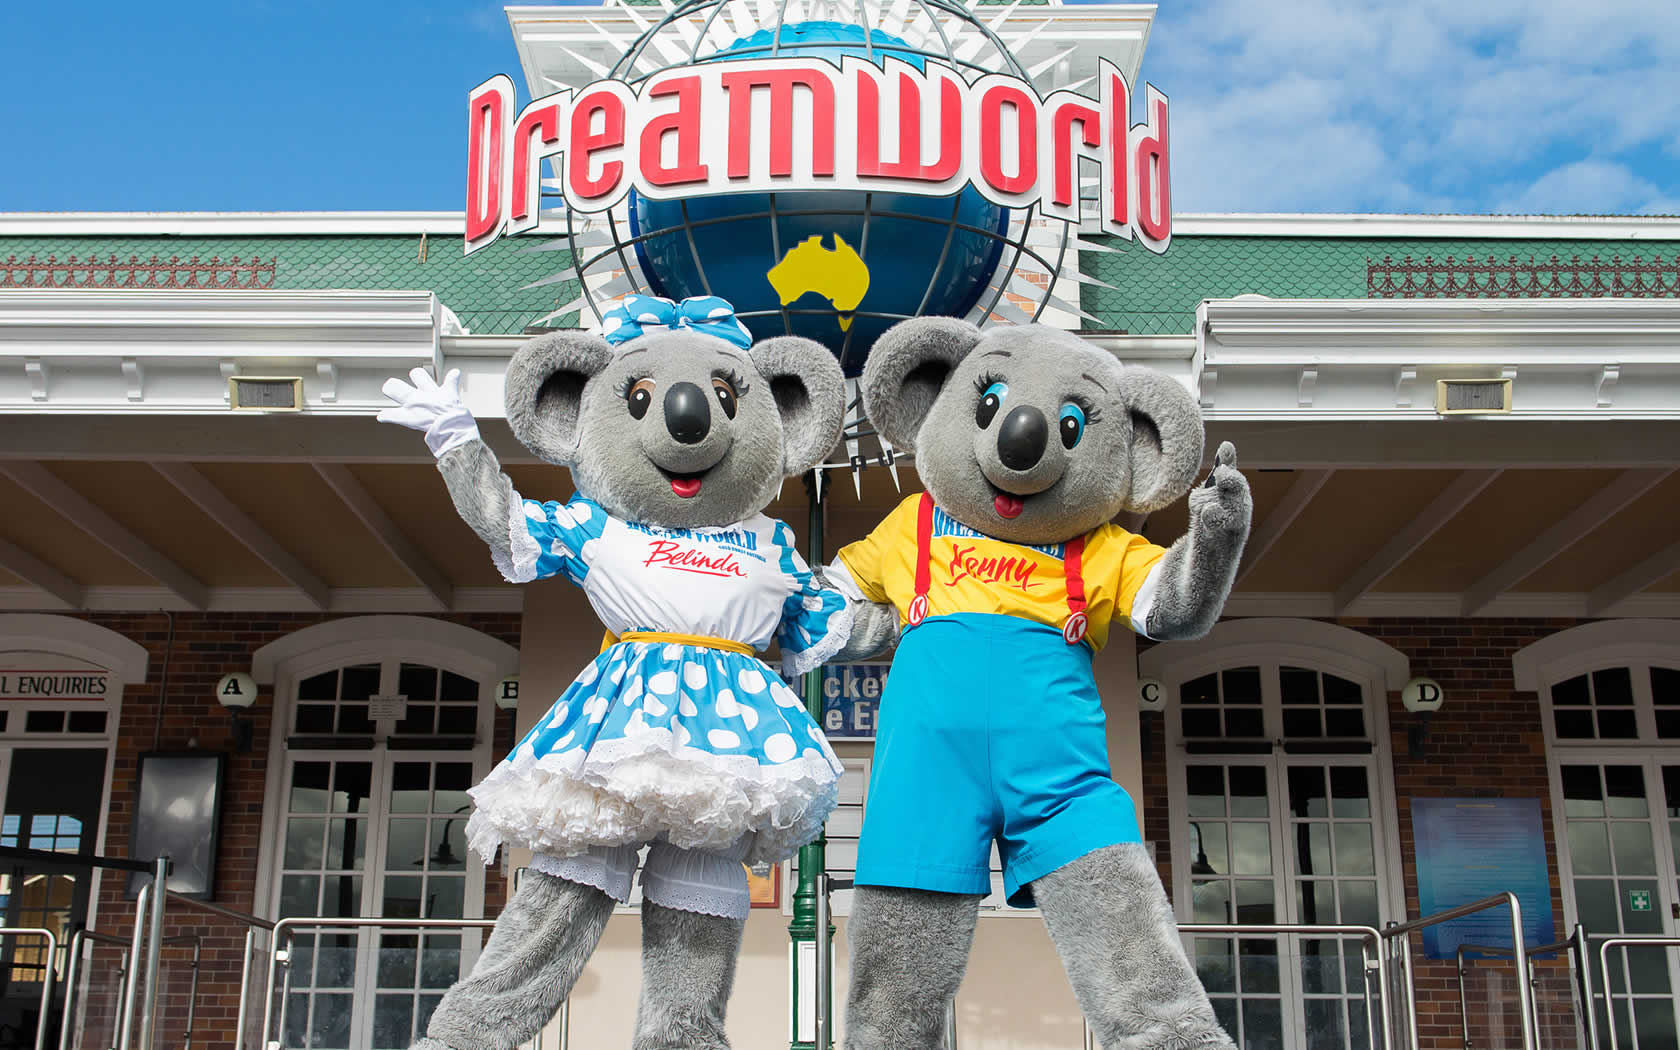 No charges sought over Dreamworld disaster